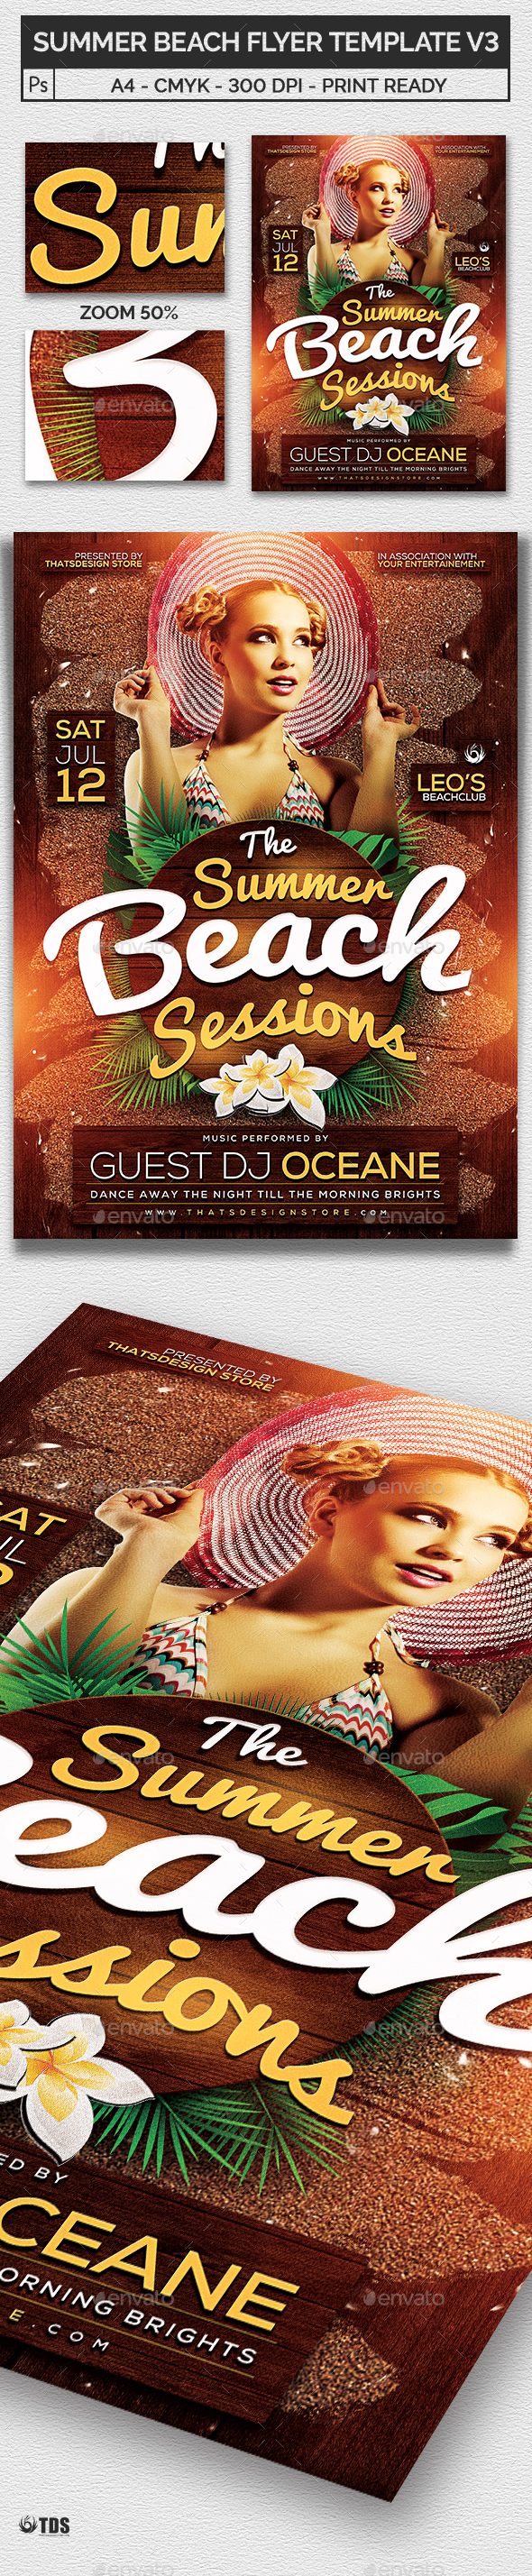 Summer Beach Flyer Template V3 - Clubs & Parties Events